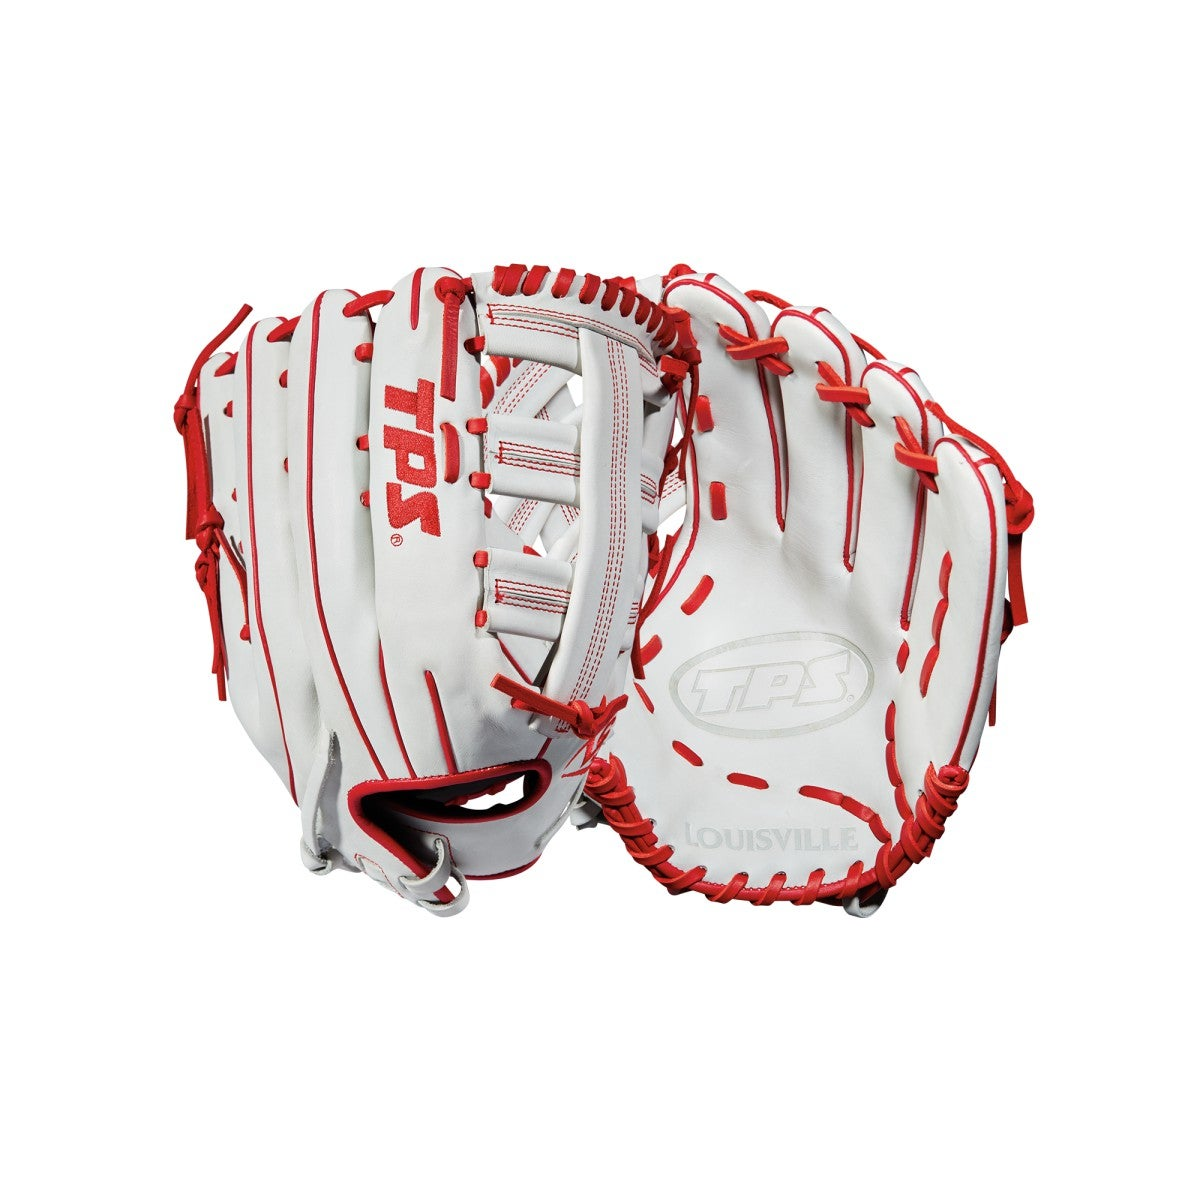 Tps 13 5 Quot Slowpitch Softball Glove Right Hand Throw